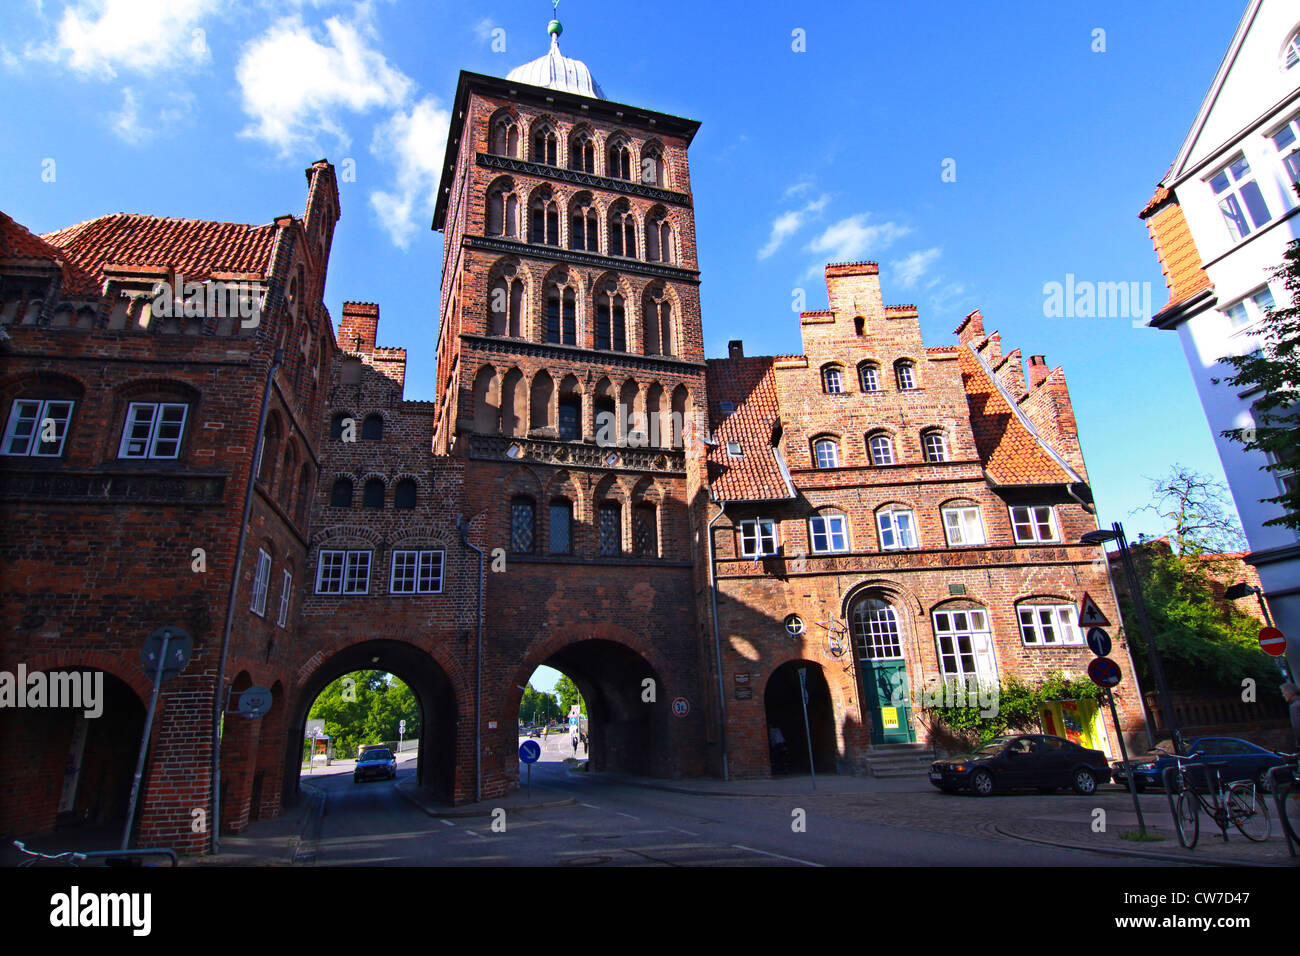 the Burgtor built in late Brick Gothic style, Germany, Schleswig-Holstein, Luebeck - Stock Image